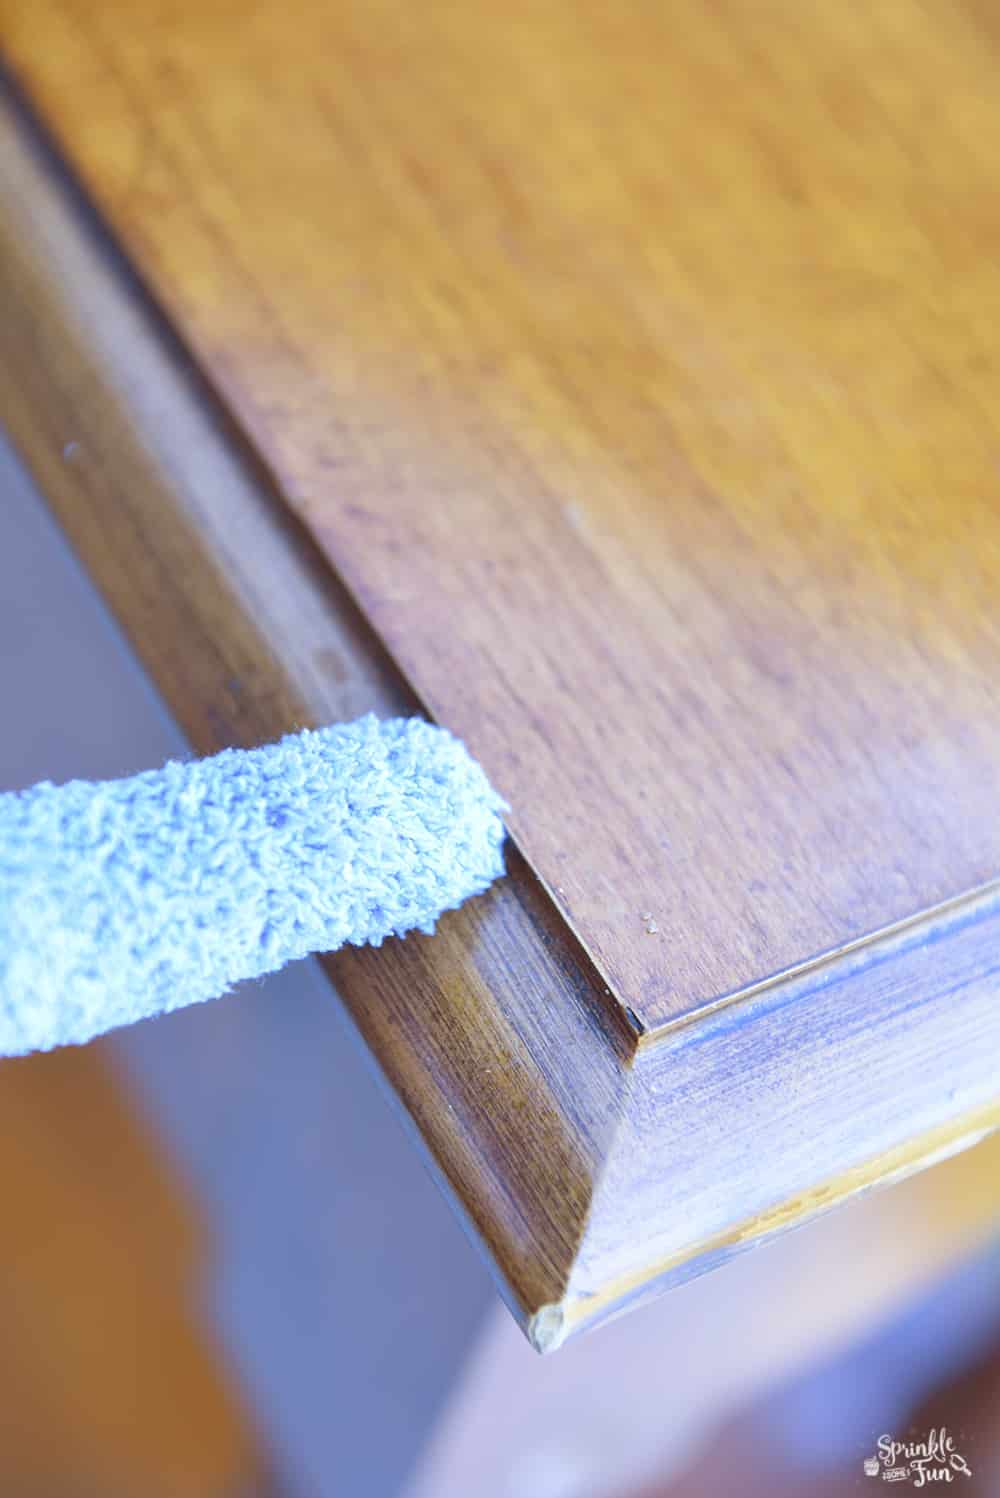 Top 5 Dusting Tips for Easier Spring Cleaning!!